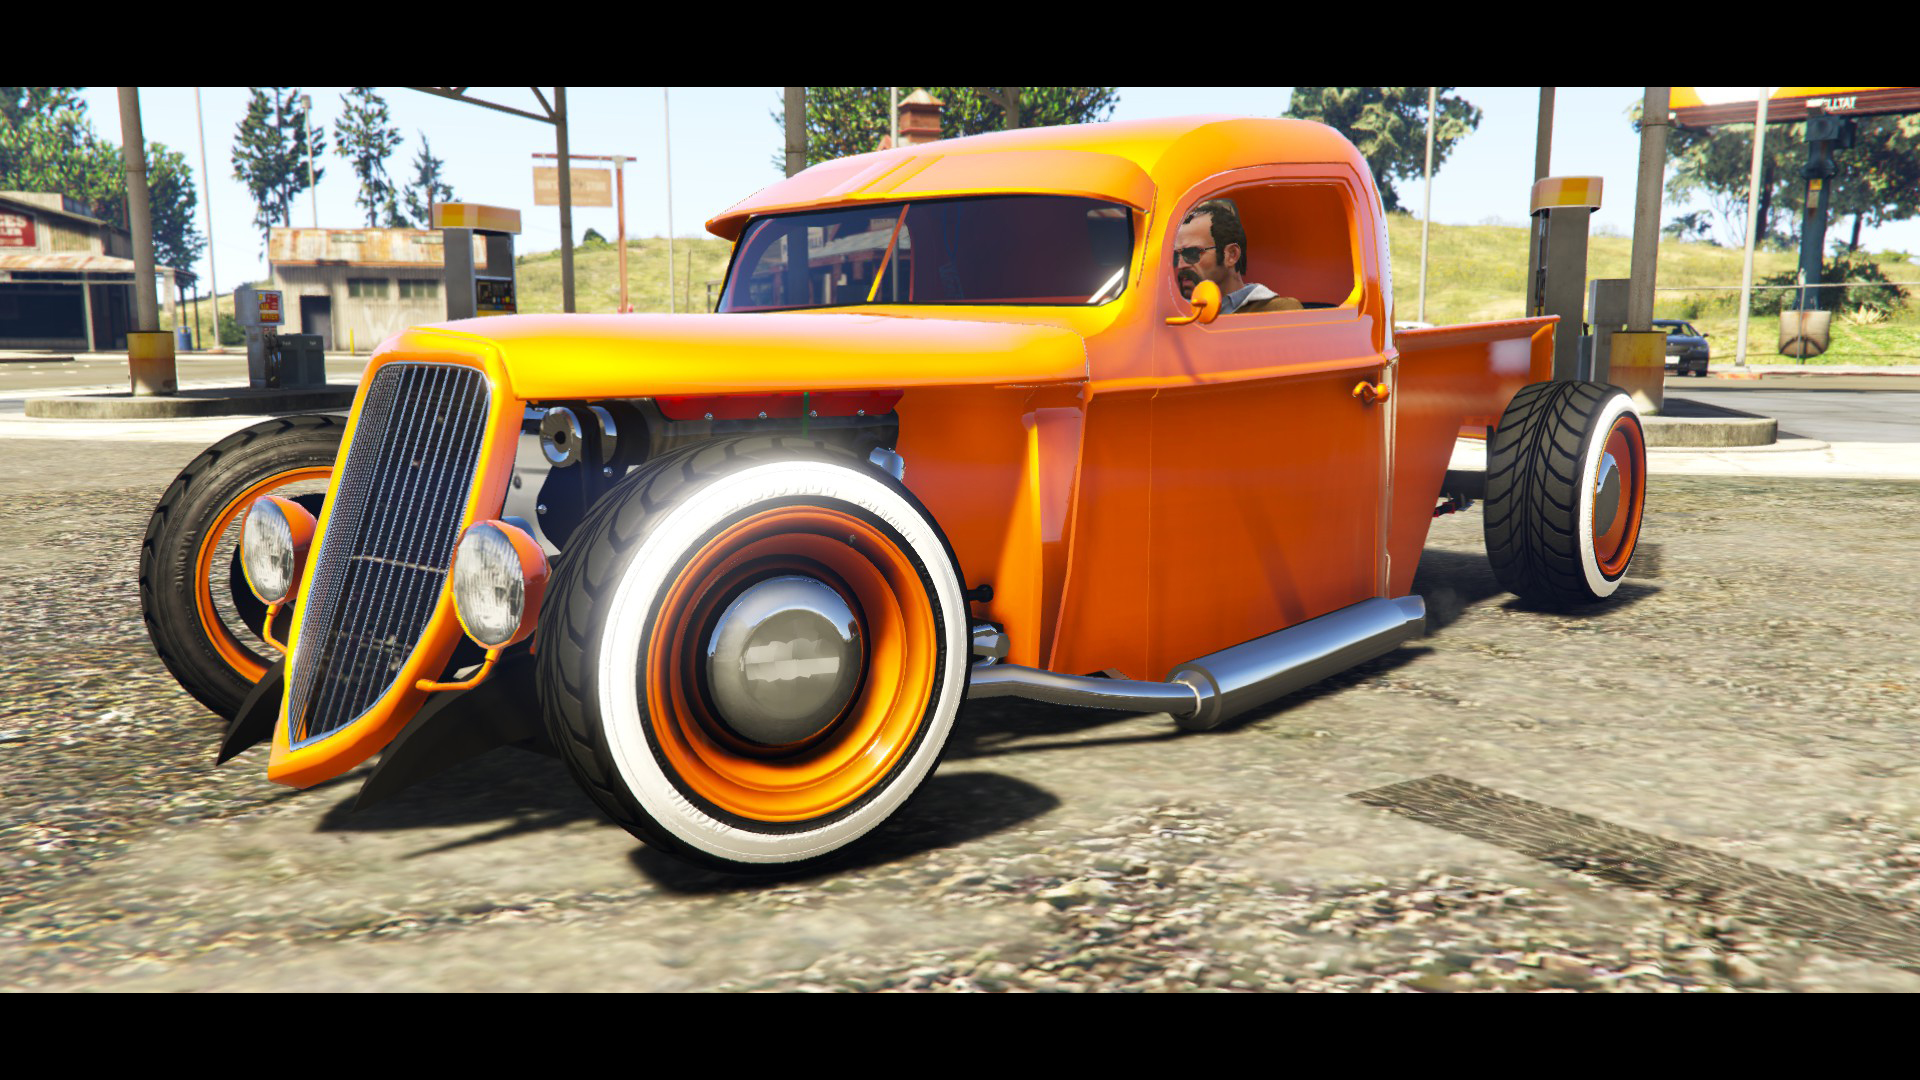 1936 Ford Pickup Hotrod Style[Full Tunable] для GTA V - Скриншот 2